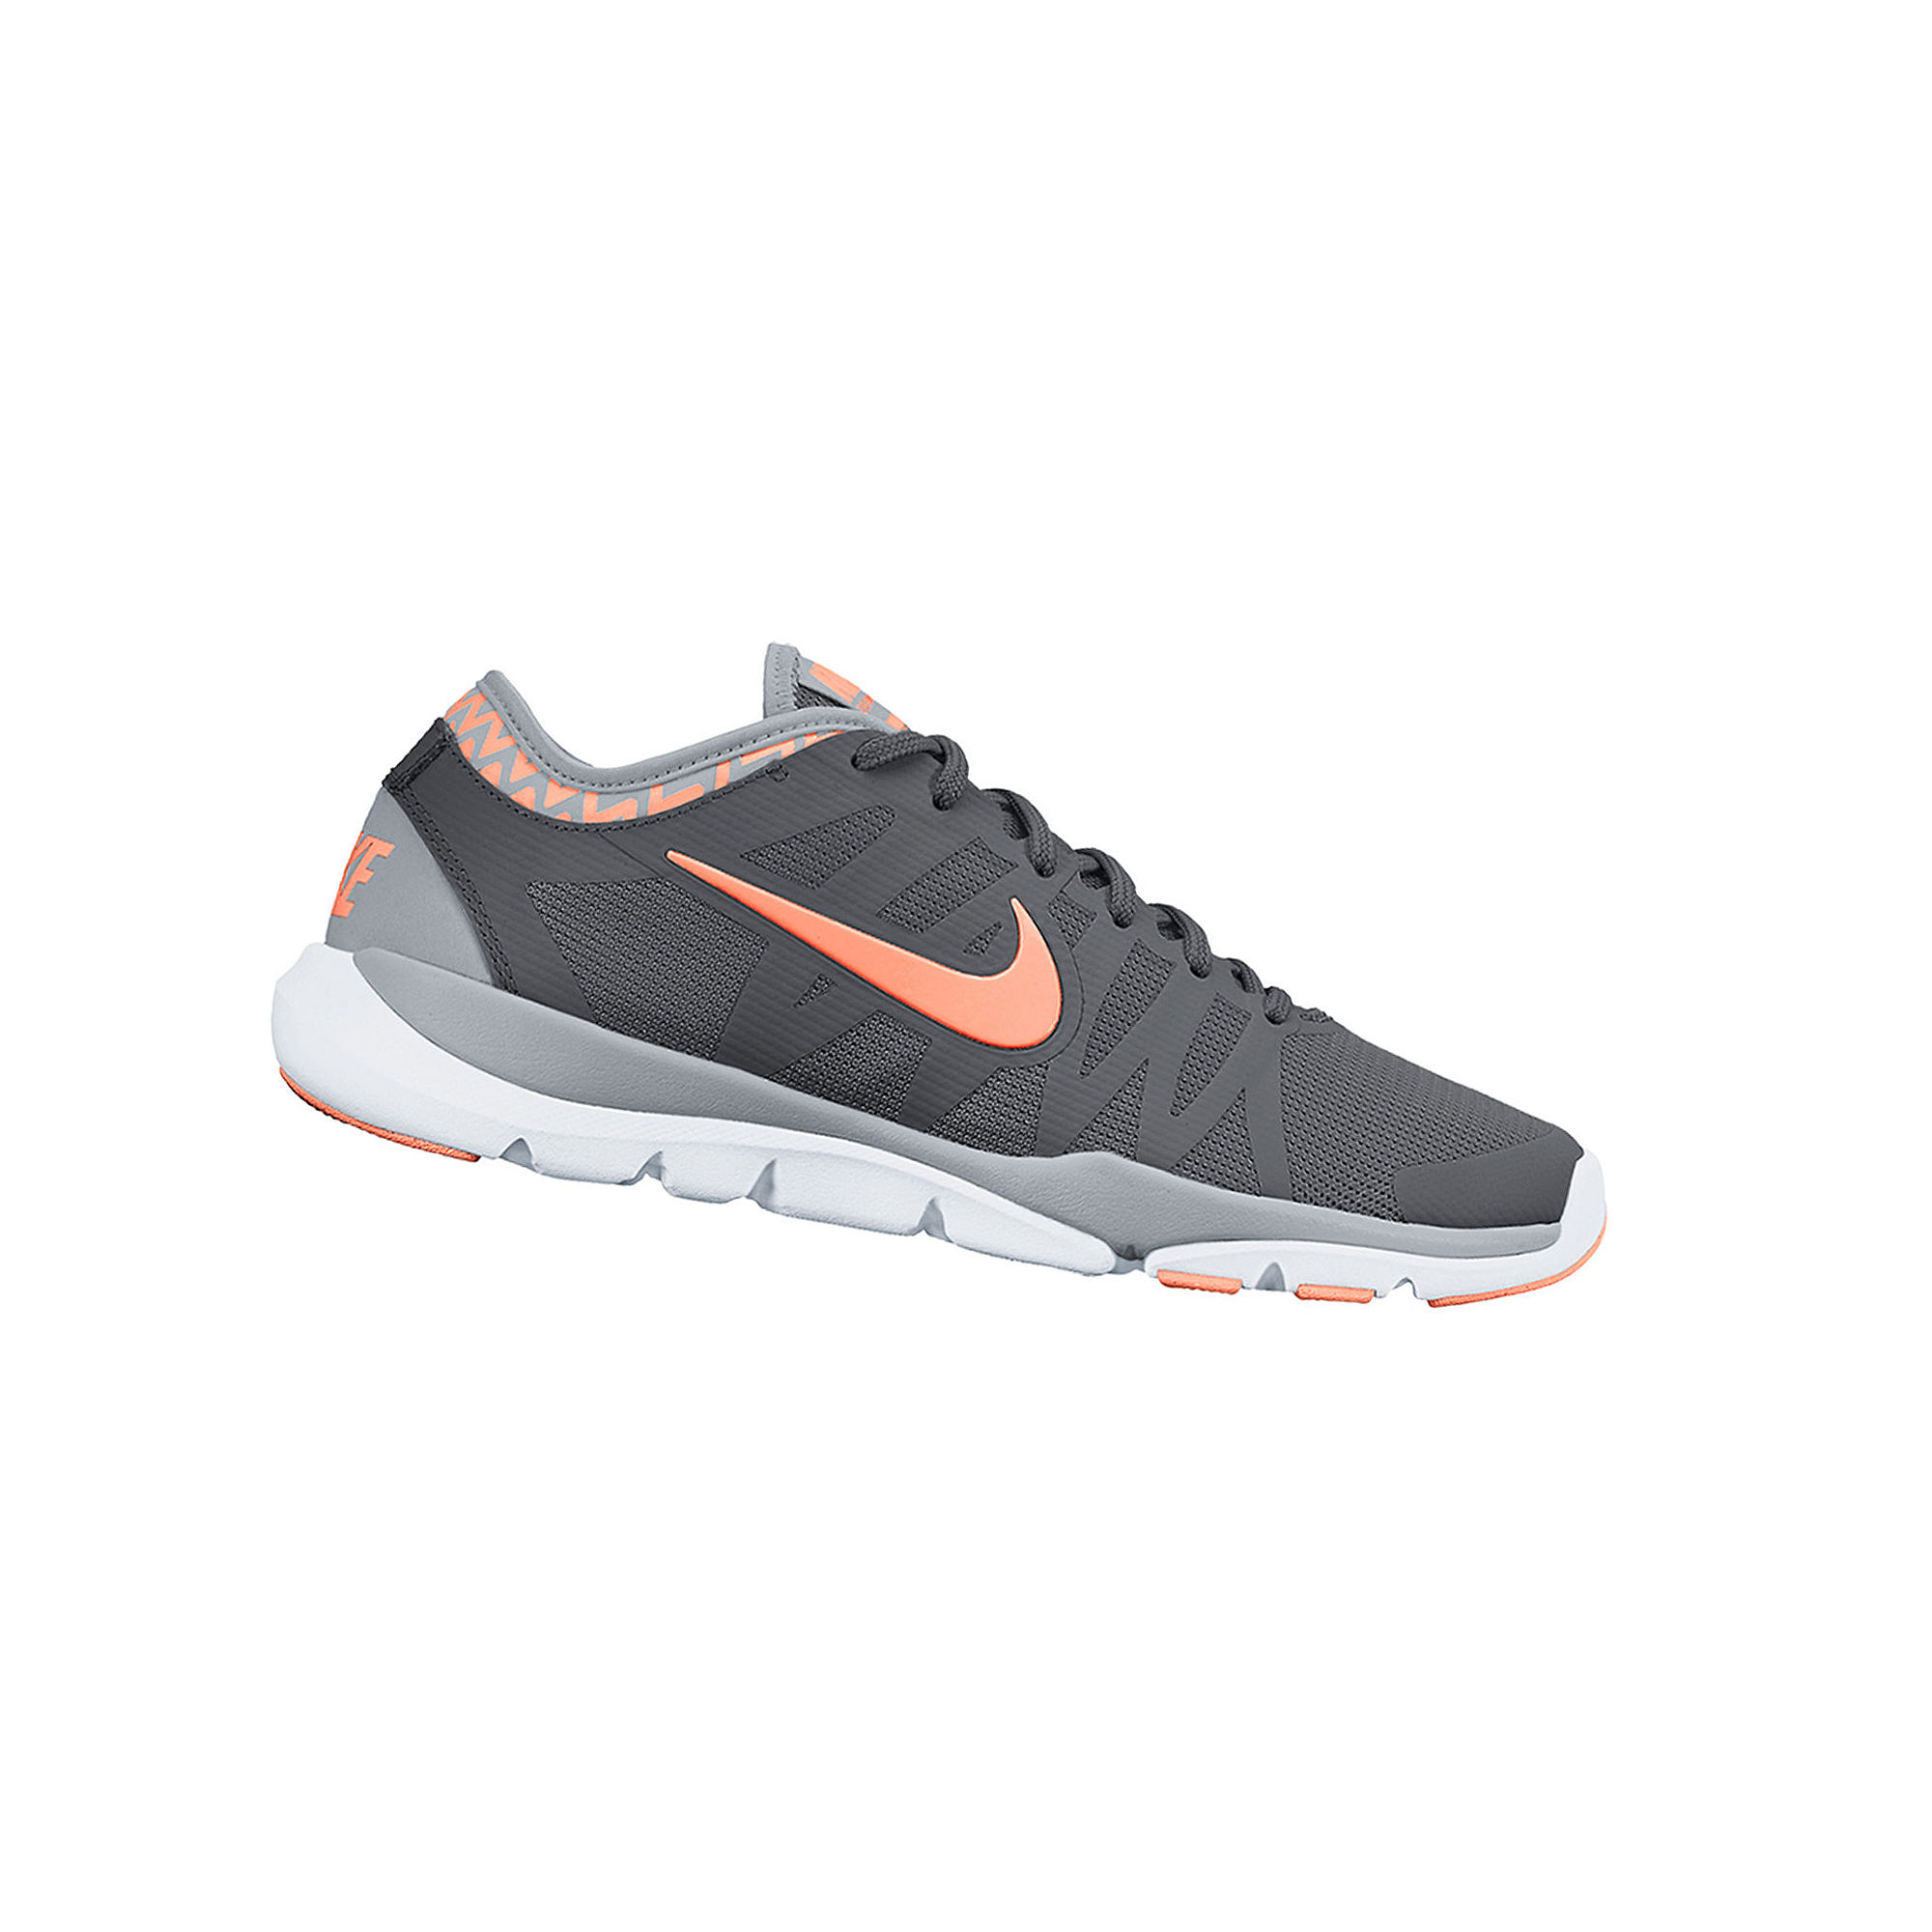 eac500ebb0ac UPC 888409617315 product image for Nike Flex Supreme TR 3 Womens Training  Shoes